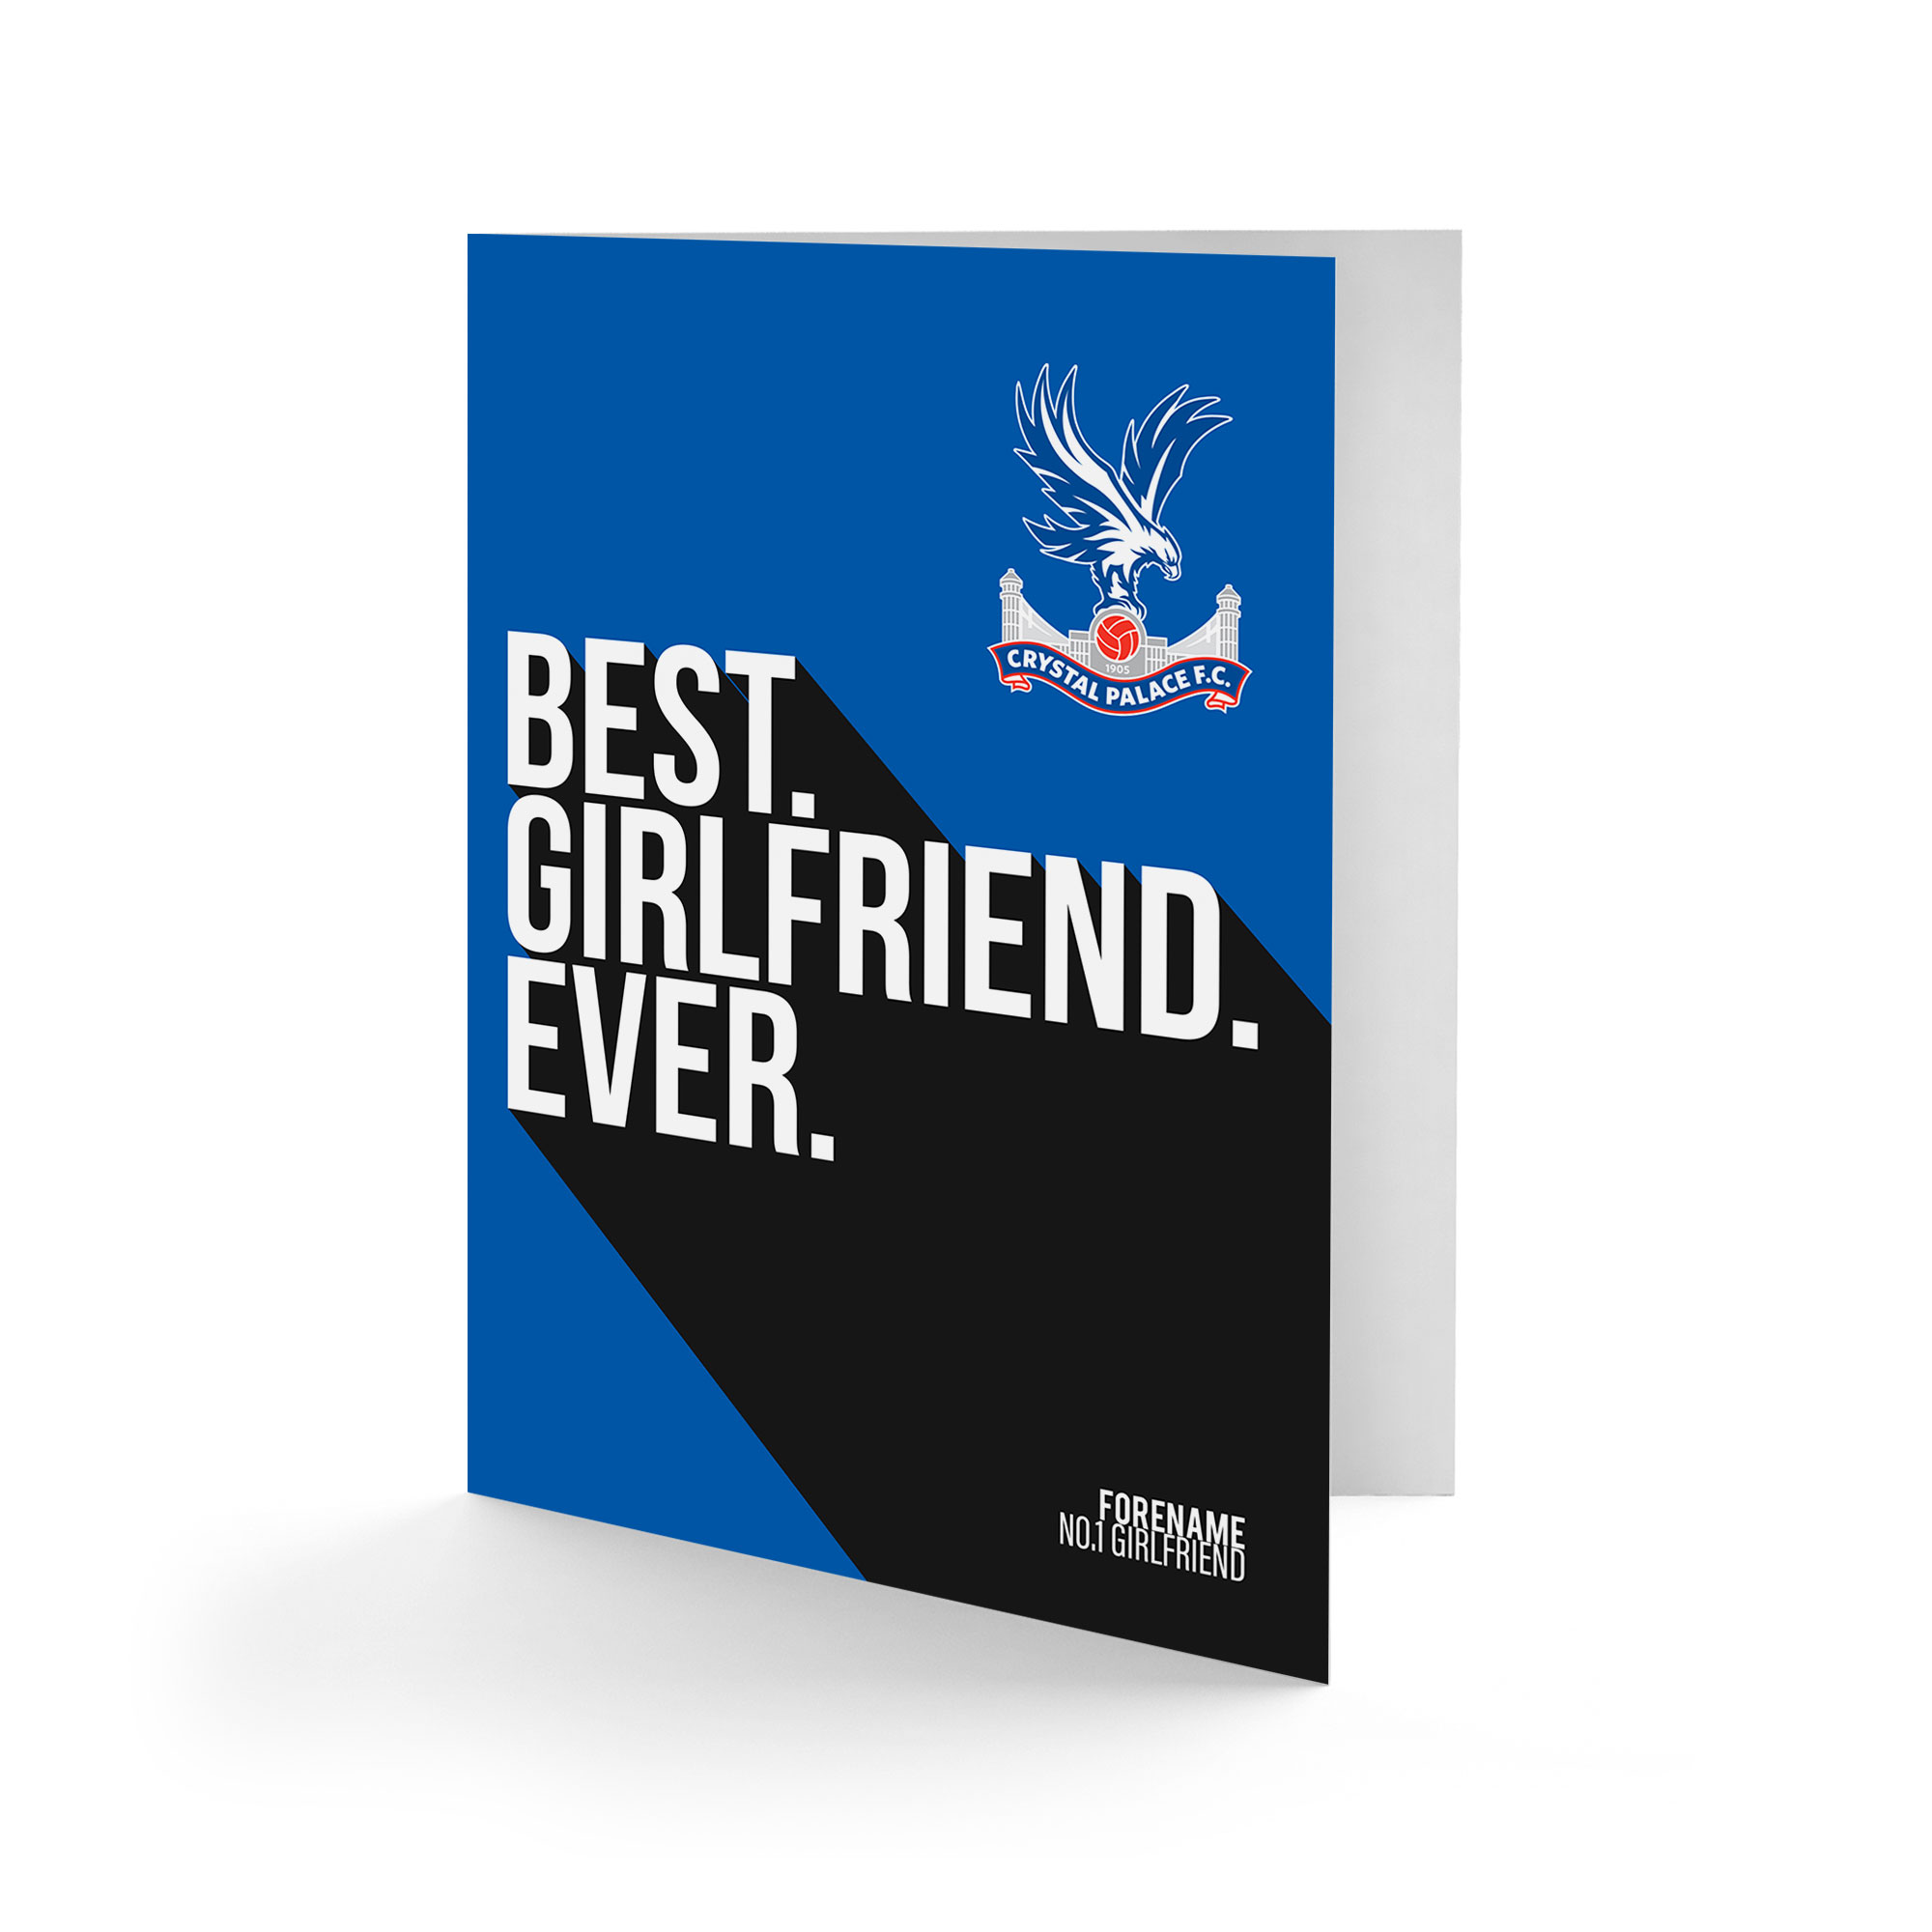 Crystal Palace FC Best Girlfriend Ever Card